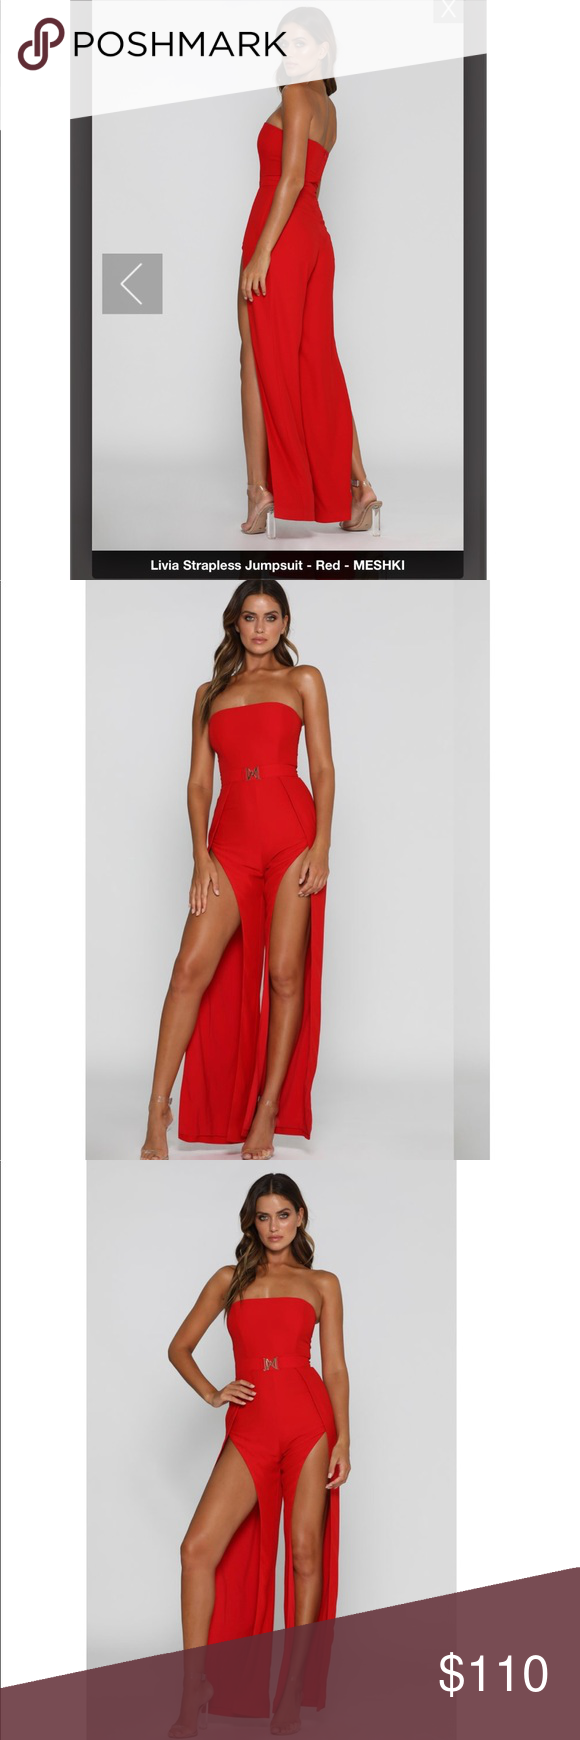 134920f56c NWT - Amazing Meshki Jumpsuit - HEAD TURNER! 😻💃 Bought this in black and